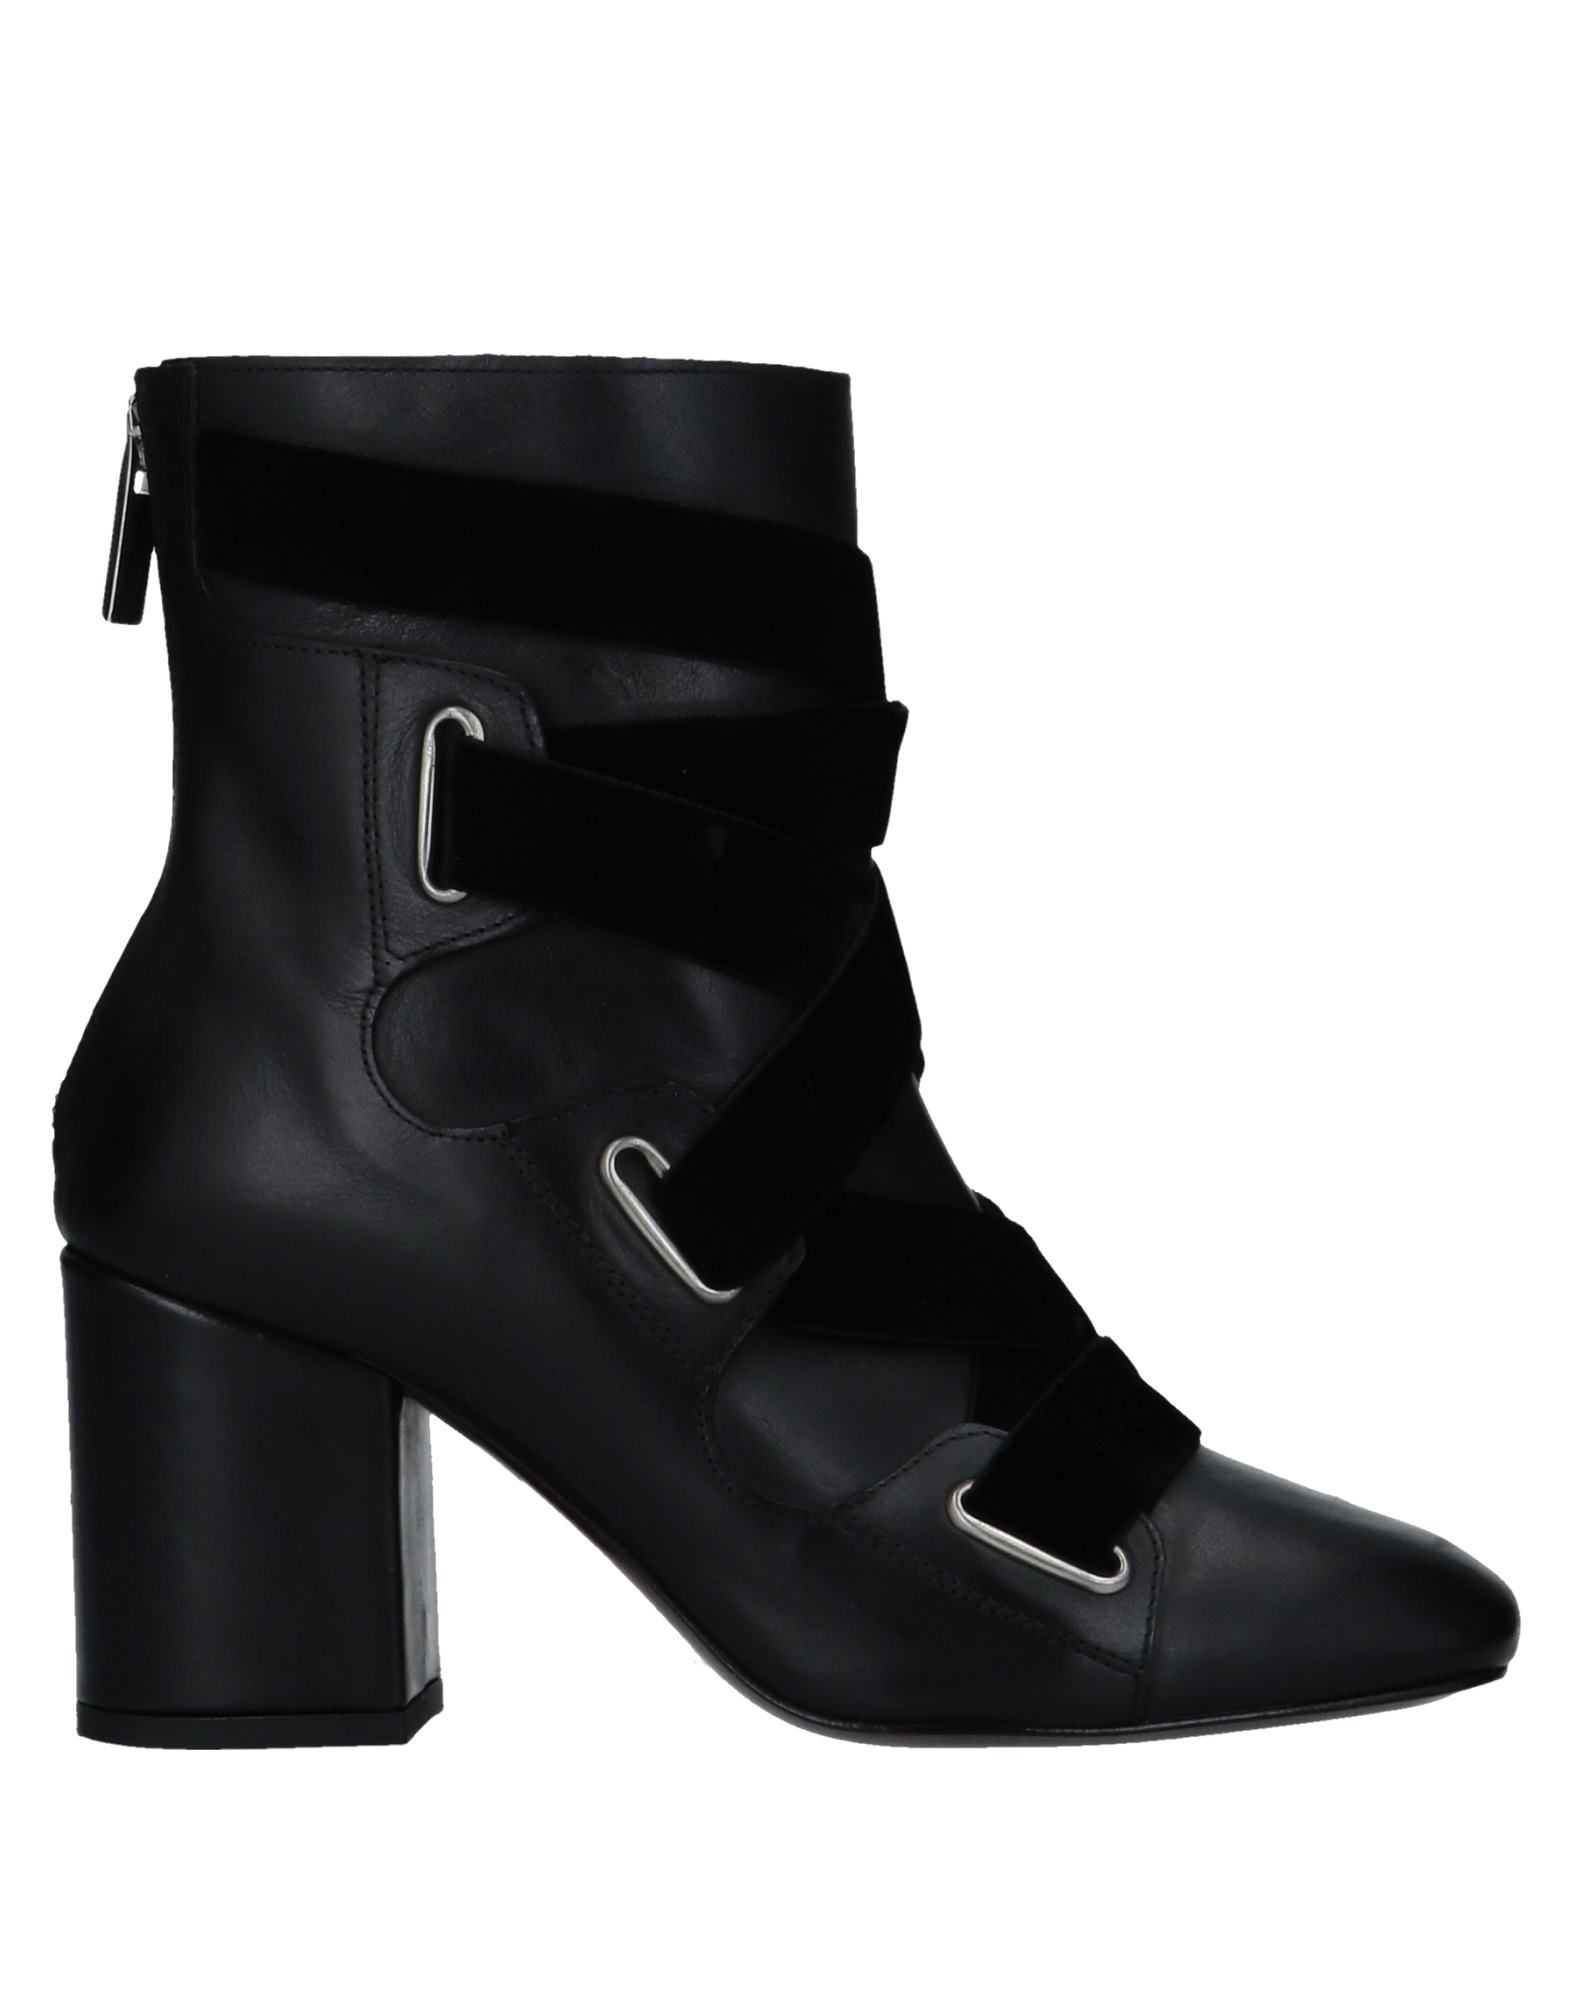 WO MILANO Ankle Boot in Black